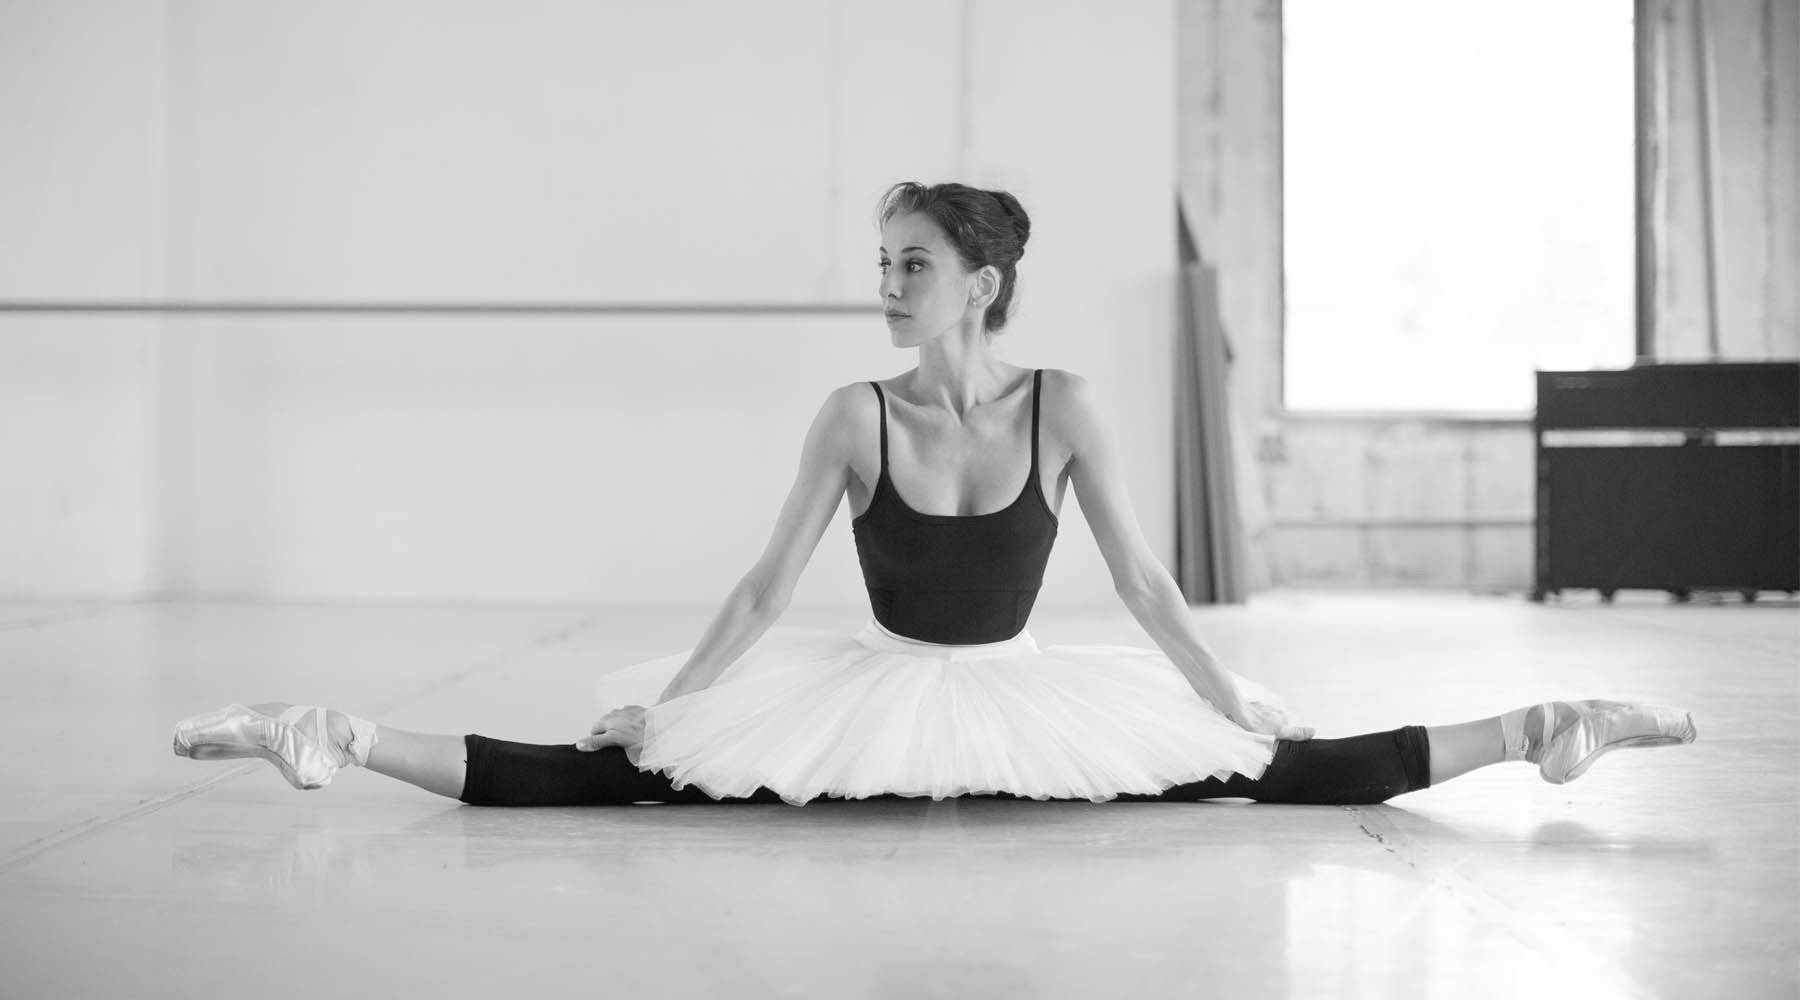 sonia rodriguez, national ballet of canada